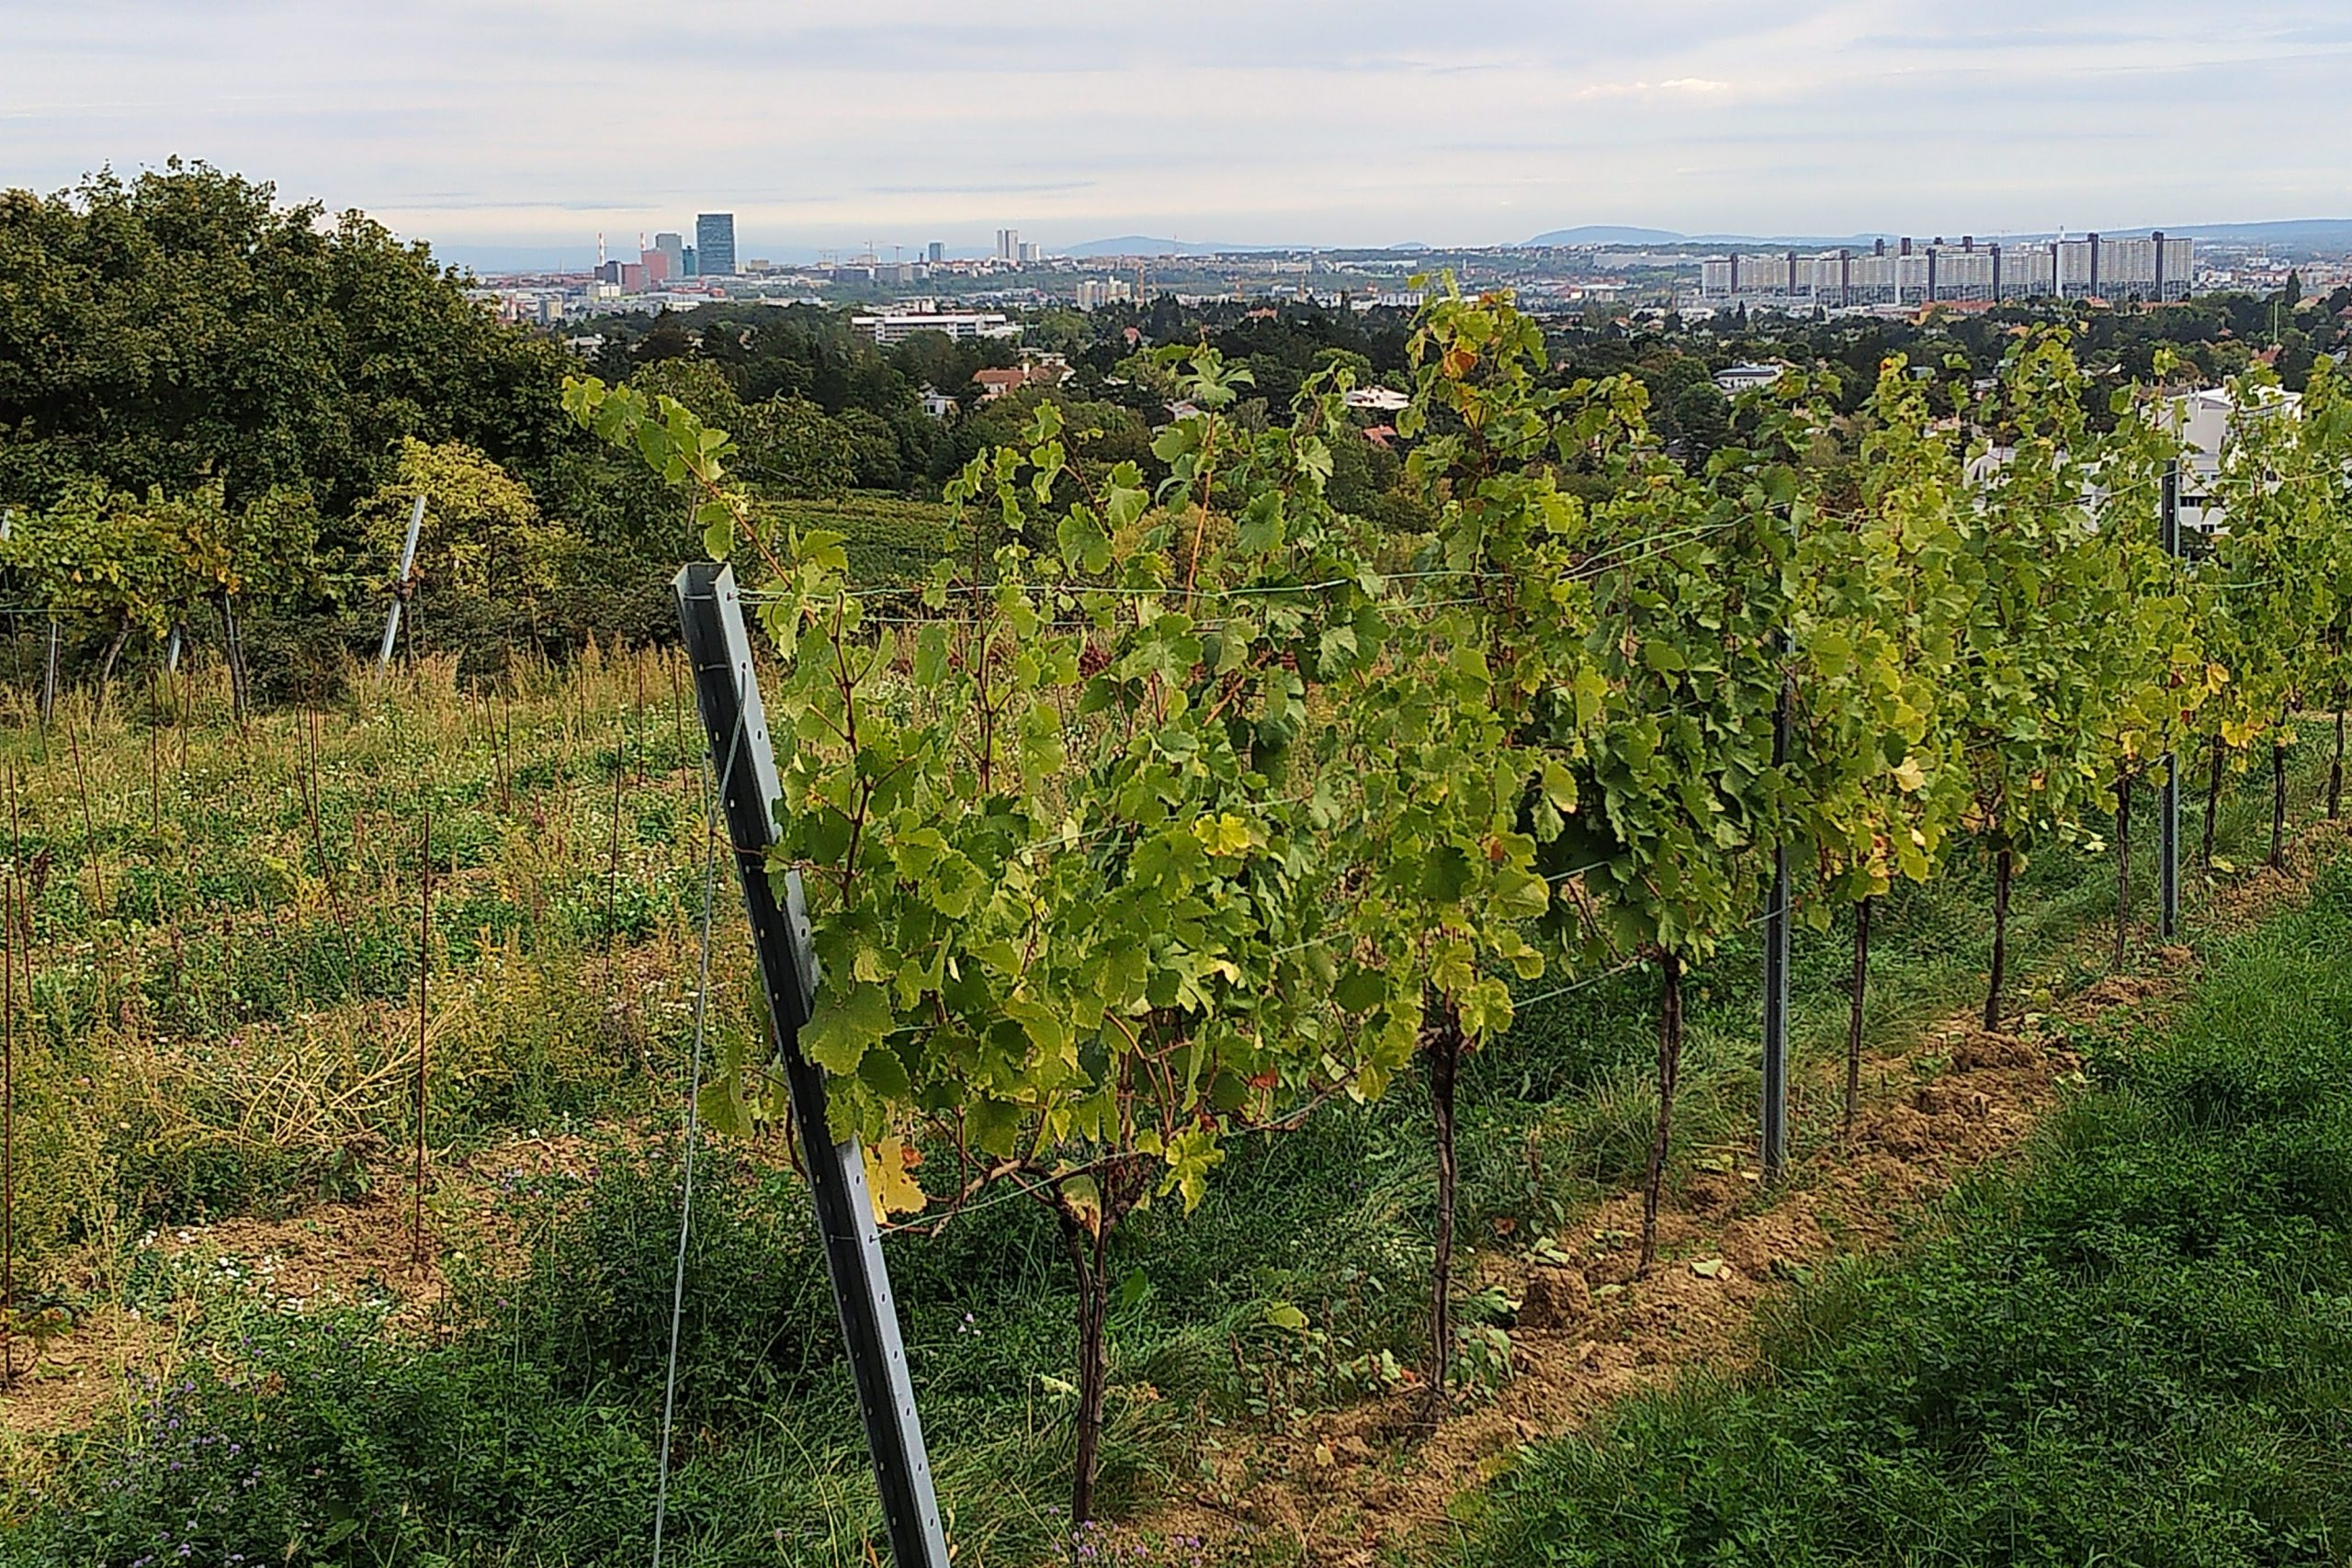 Vineyard in the city